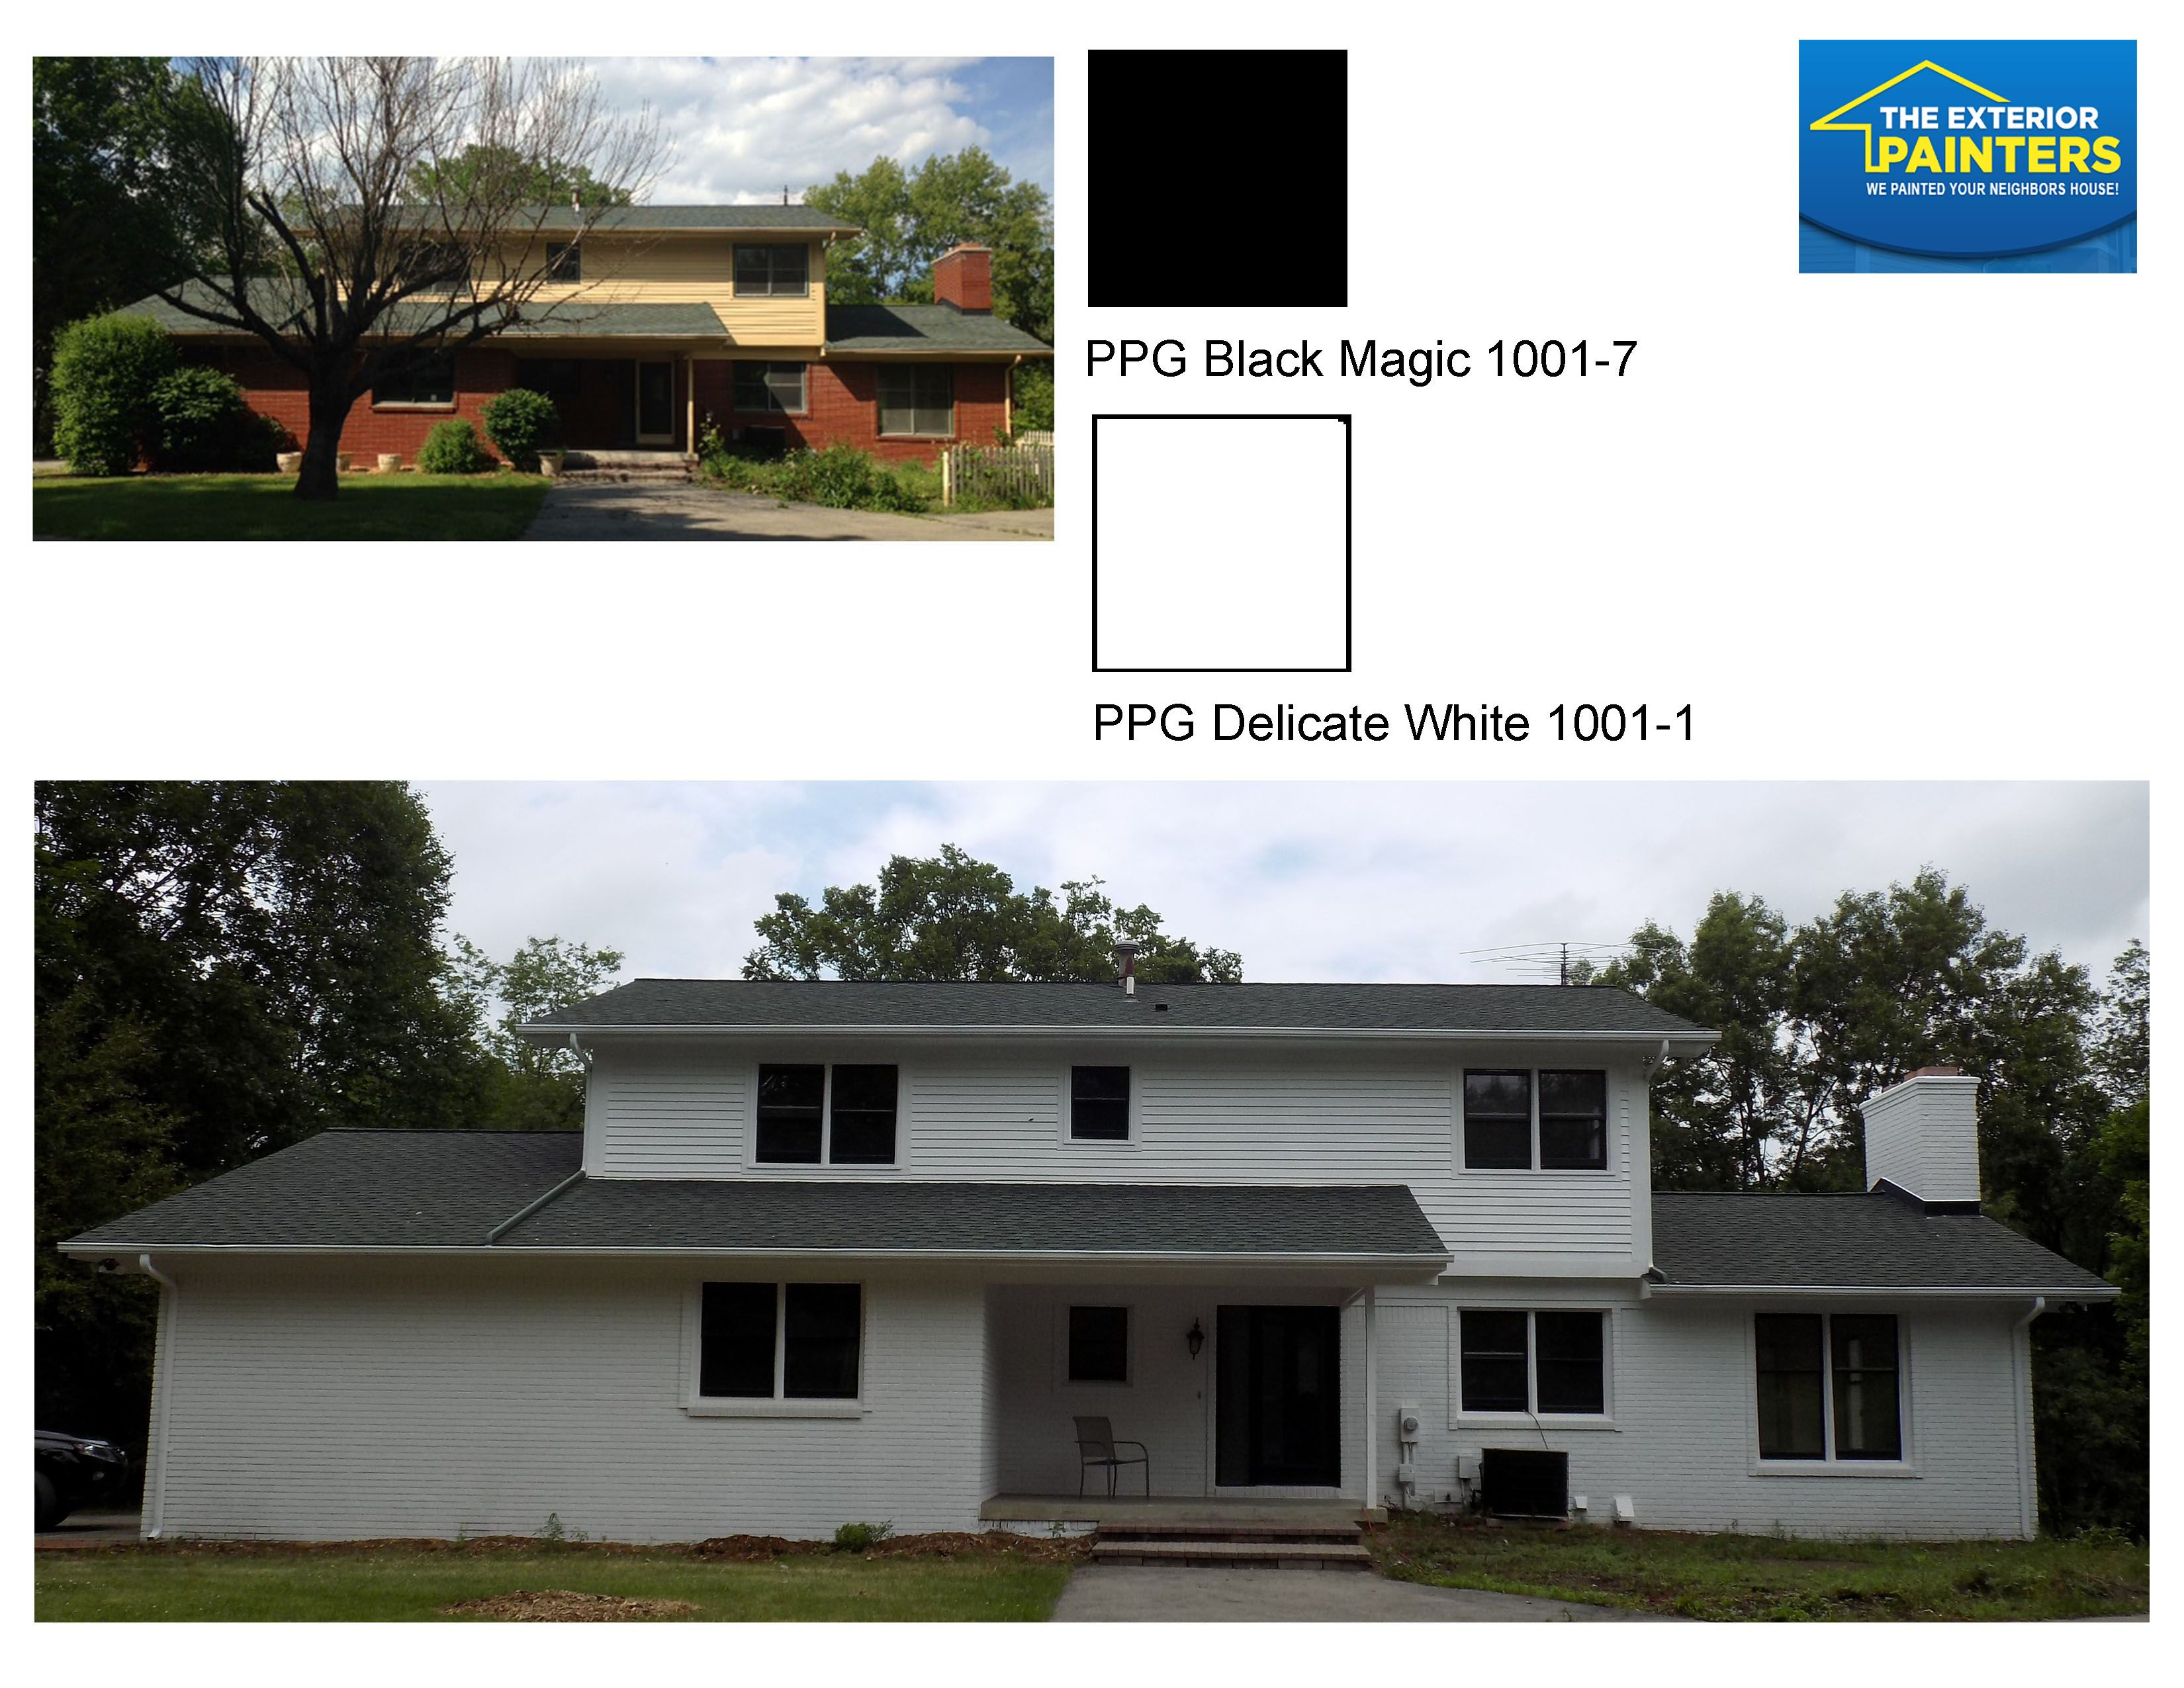 Painted Brick And Siding In Ppg 1001 1 Delicate White With Ppg 1001 7 Black Magic For The Accent Painted Brick Exterior Painters Exterior Paint Colors